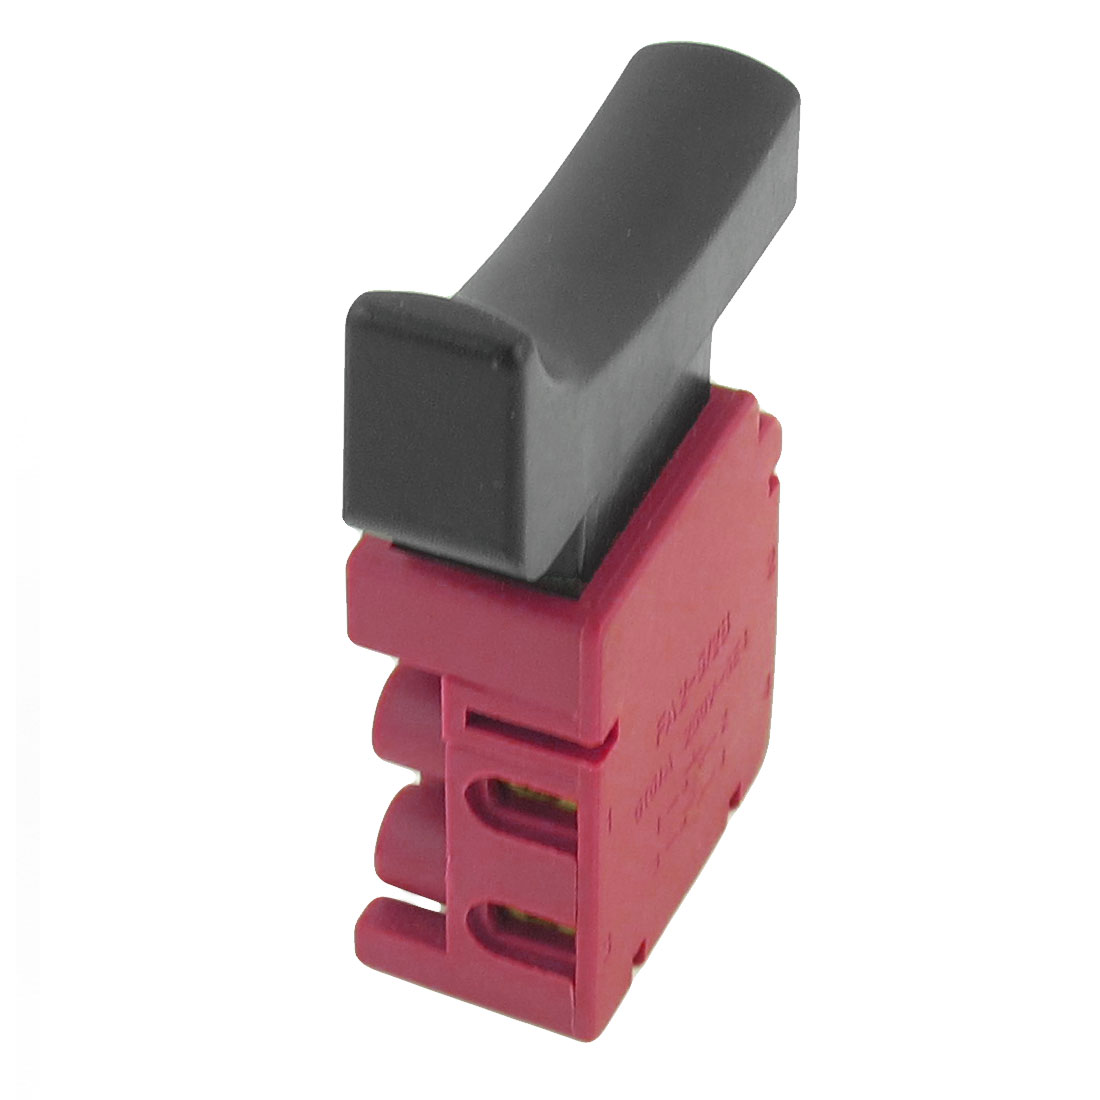 DPST 2NO 250V 6A 5E4 Momentary Trigger Switch for Electric Hammer